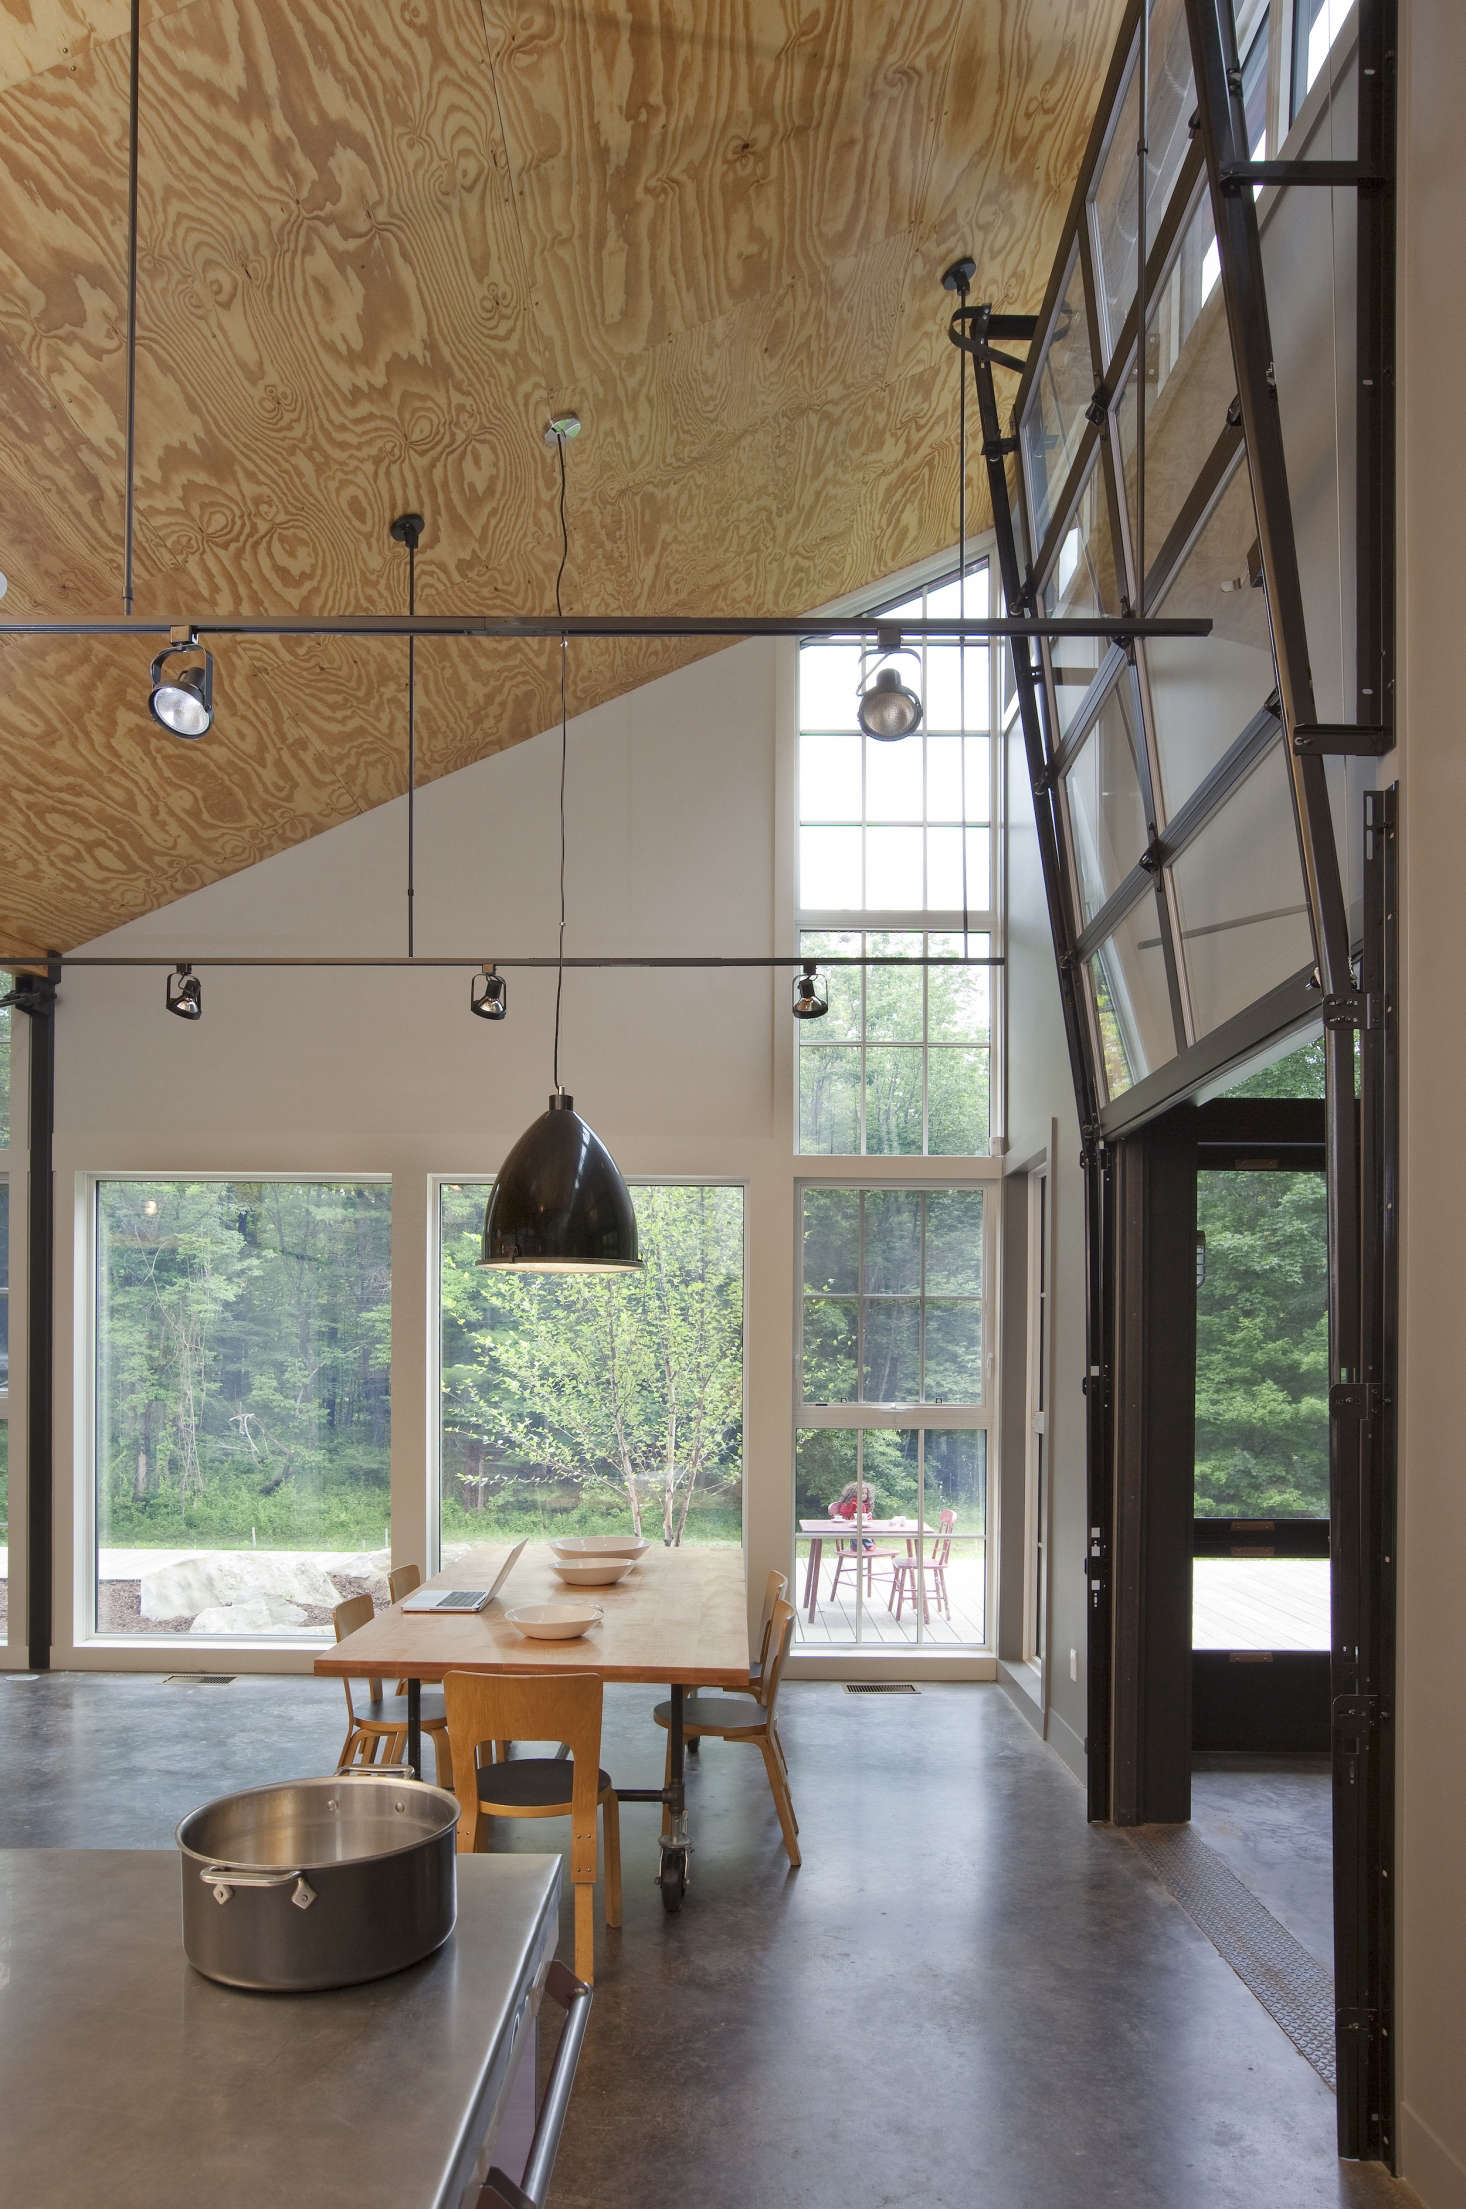 Plywood is used for the ceilings in a modern kitchen in Massachusetts by Burr & McCallum Architects, members of the Remodelista Architect and Designer Directory. See A Civilized Factory by Burr & McCallum Architects. Photograph by Peter Vanderwarker.